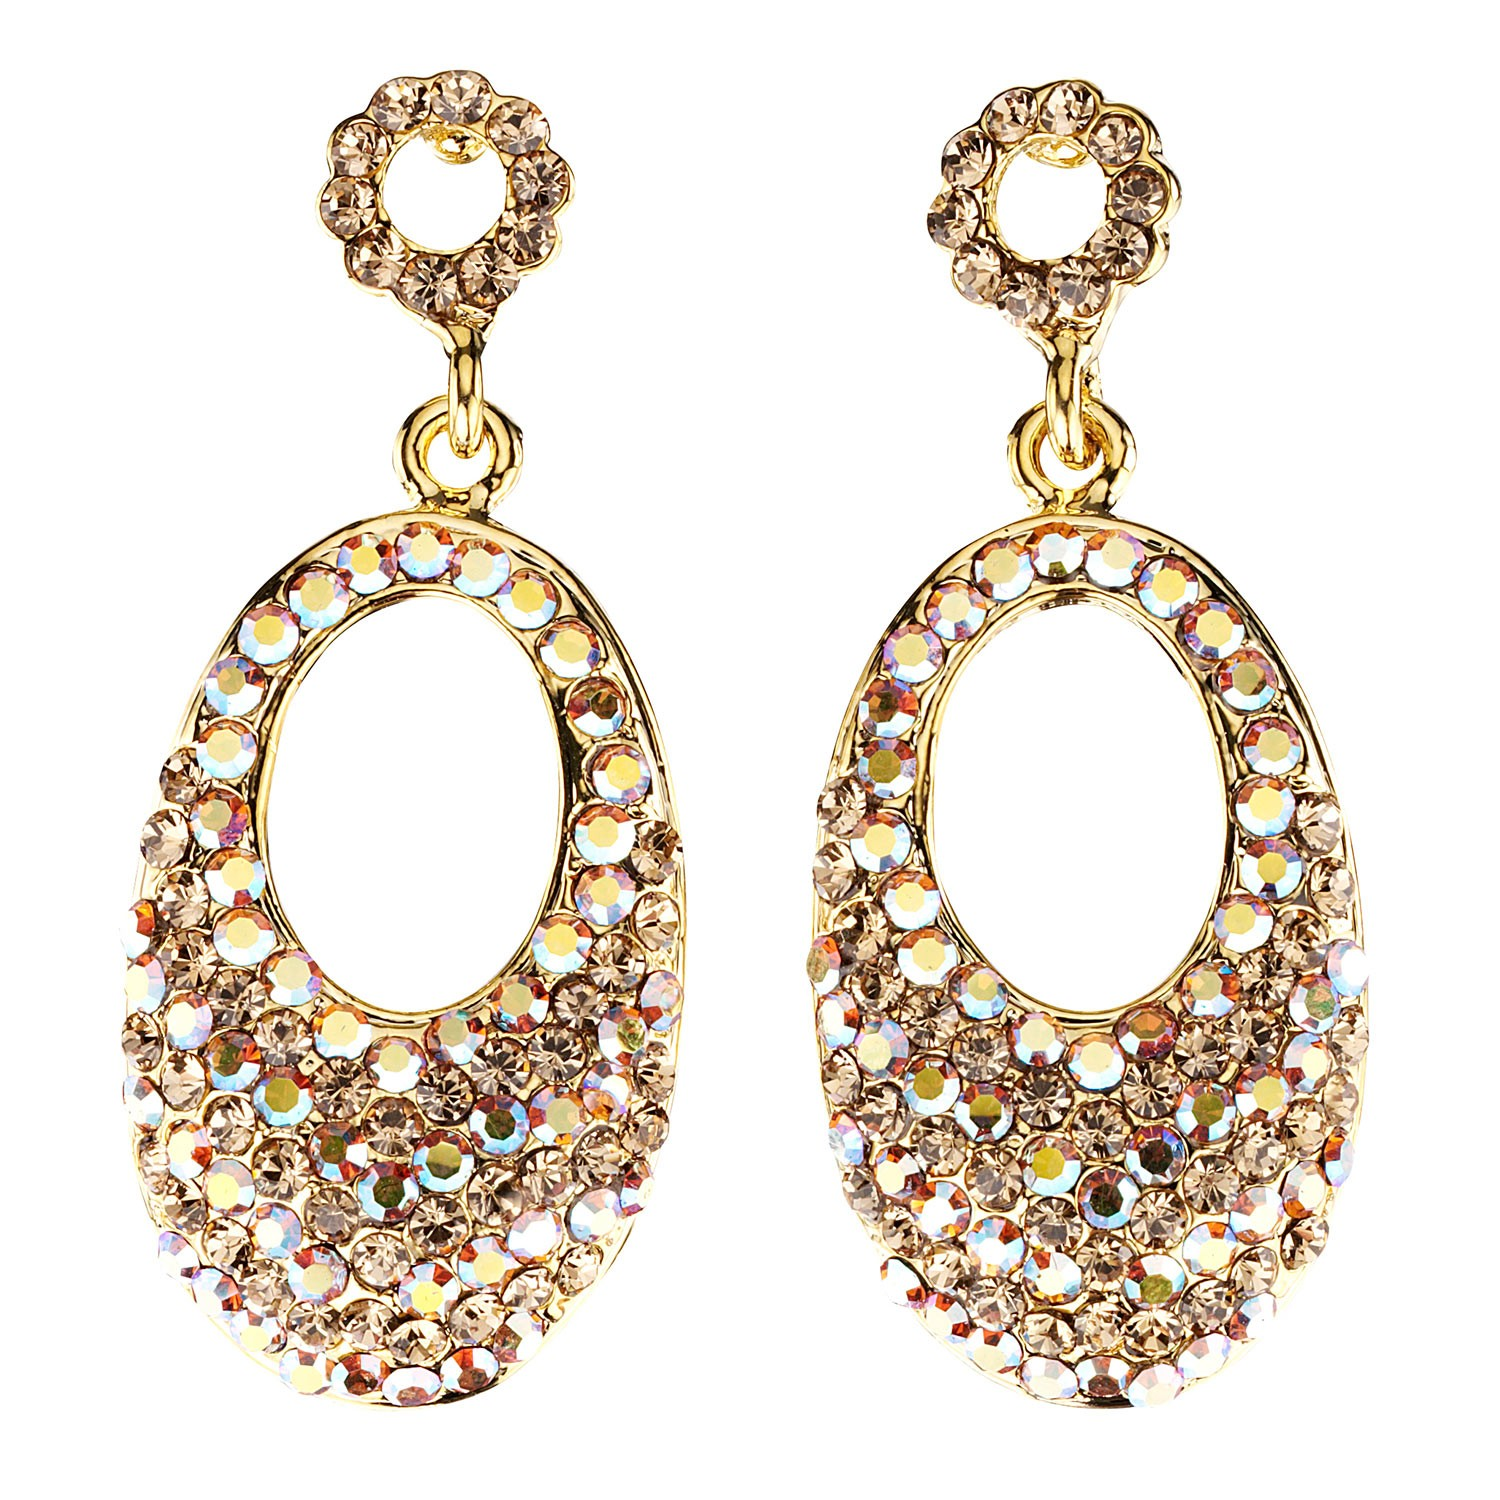 478b97d91 Swarovski Crystal Oval Crystal Drop Earrings with AB Topaz and Topaz ...